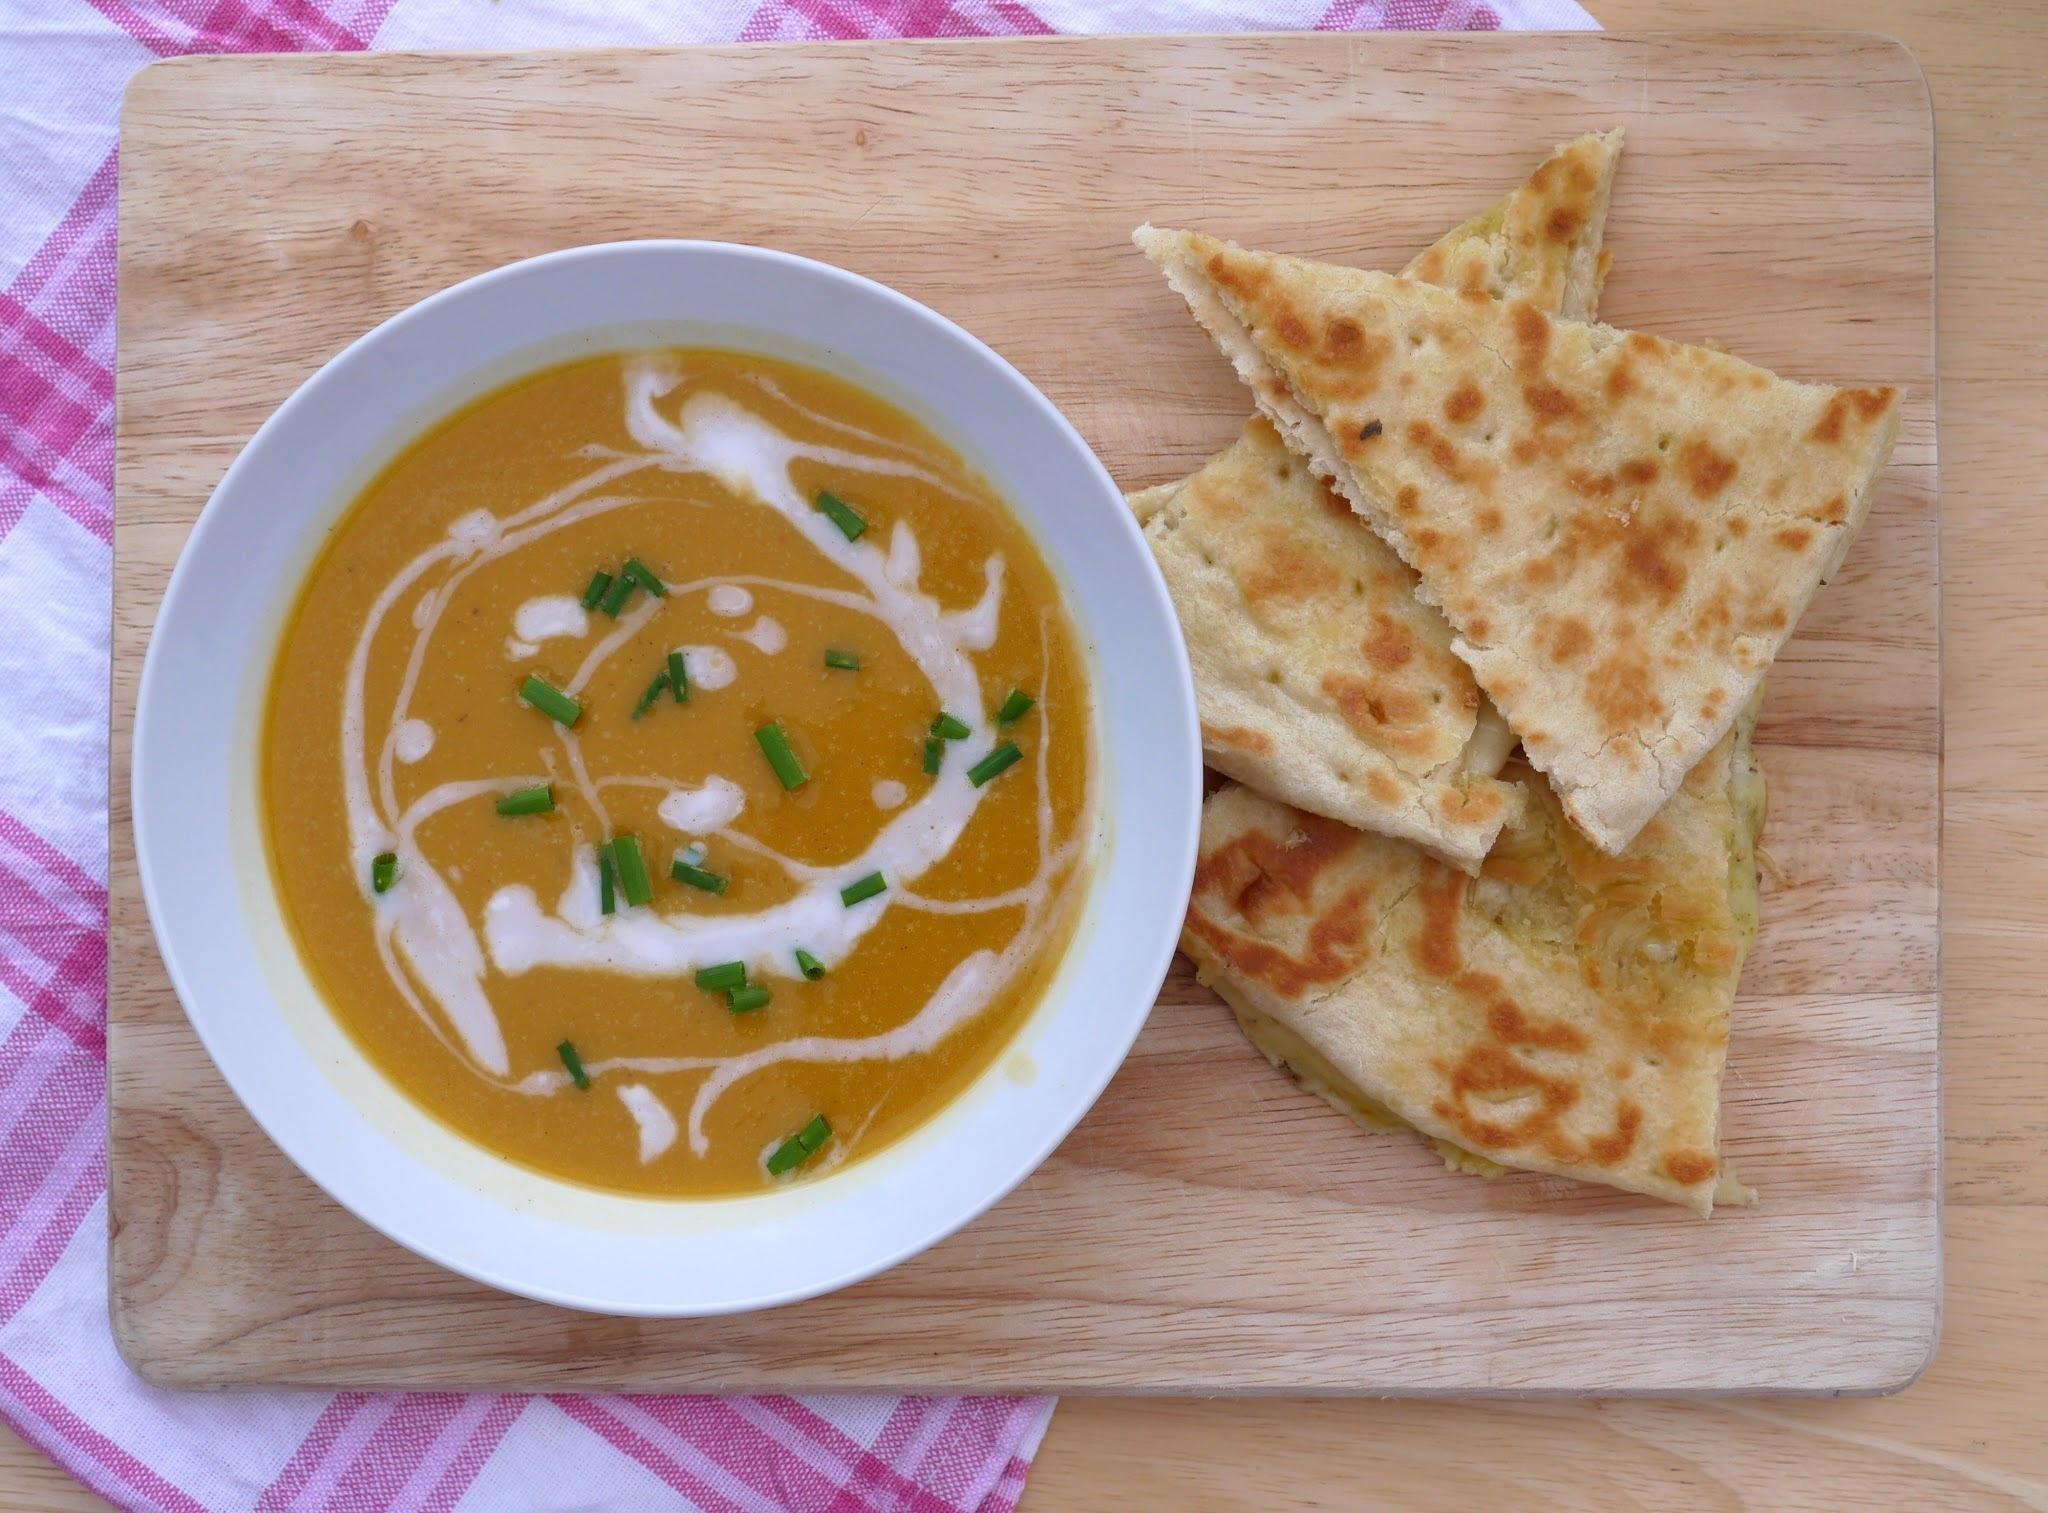 Roasted Butternut Squash Soup + Smoky Cheddar Za'atar Naan Dippers.